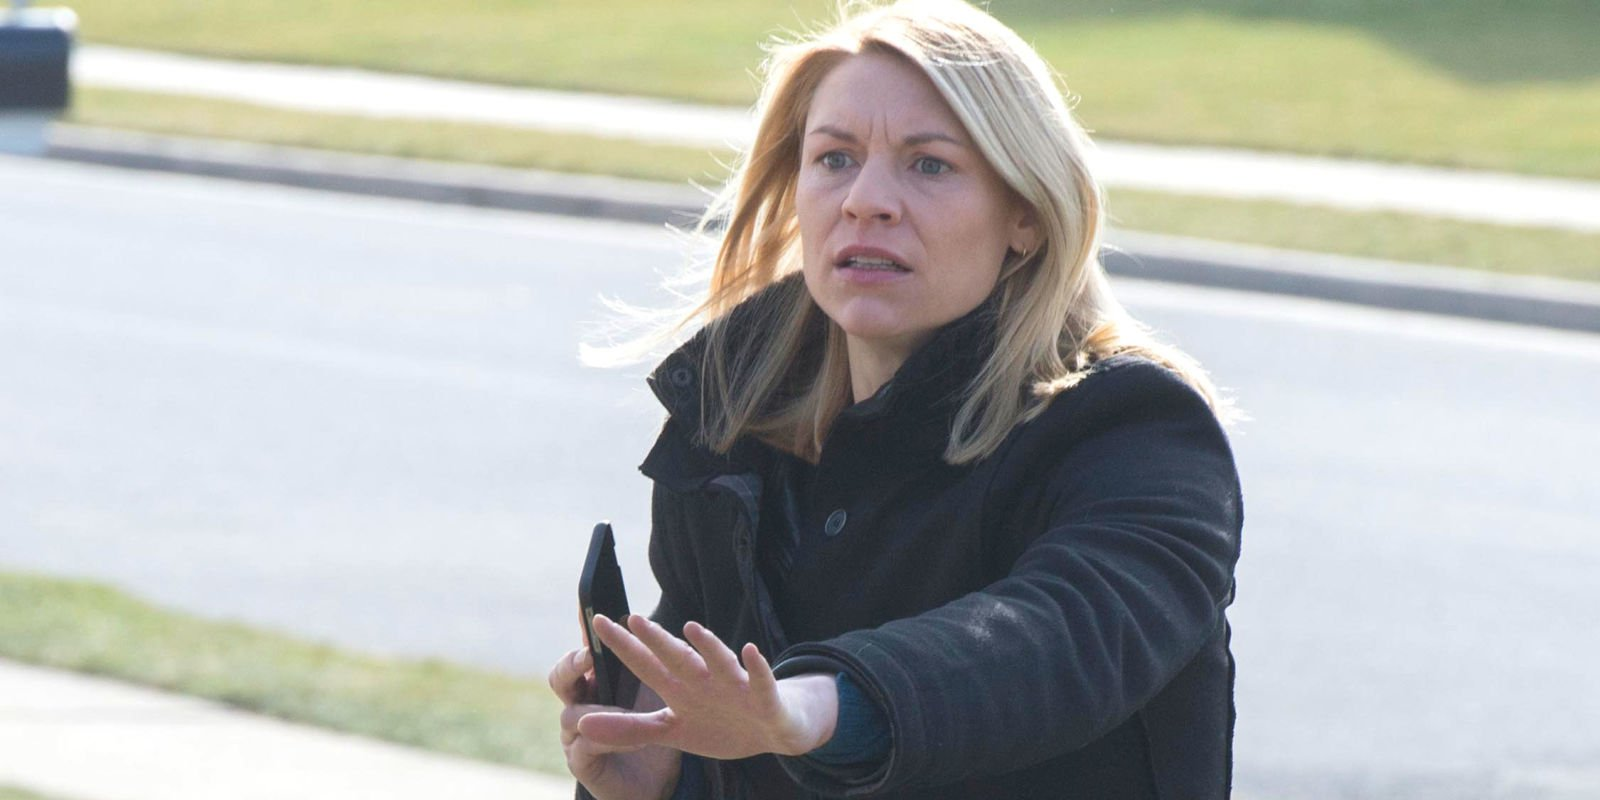 Homeland season 8 trailer, release date, cast and everything you need to know